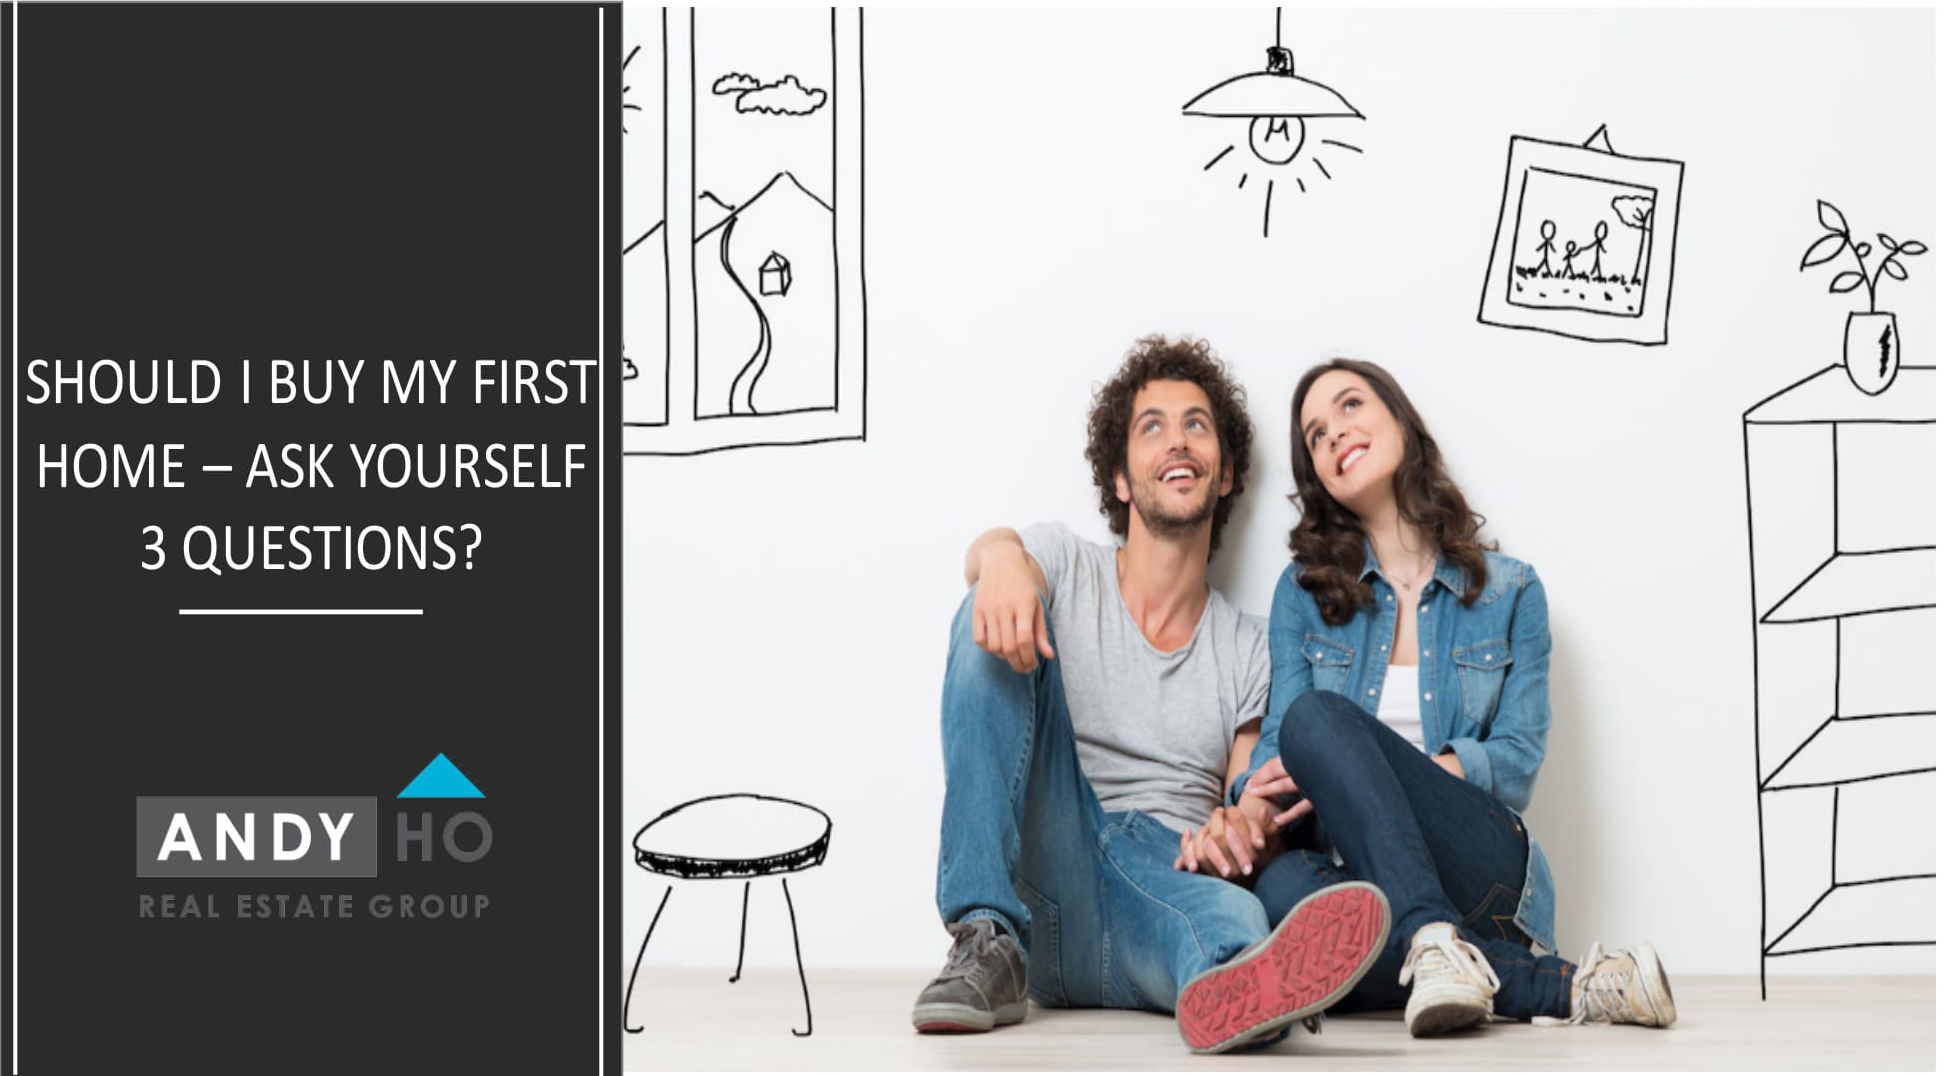 Should I Buy My First Home – Ask Yourself 3 Questions?